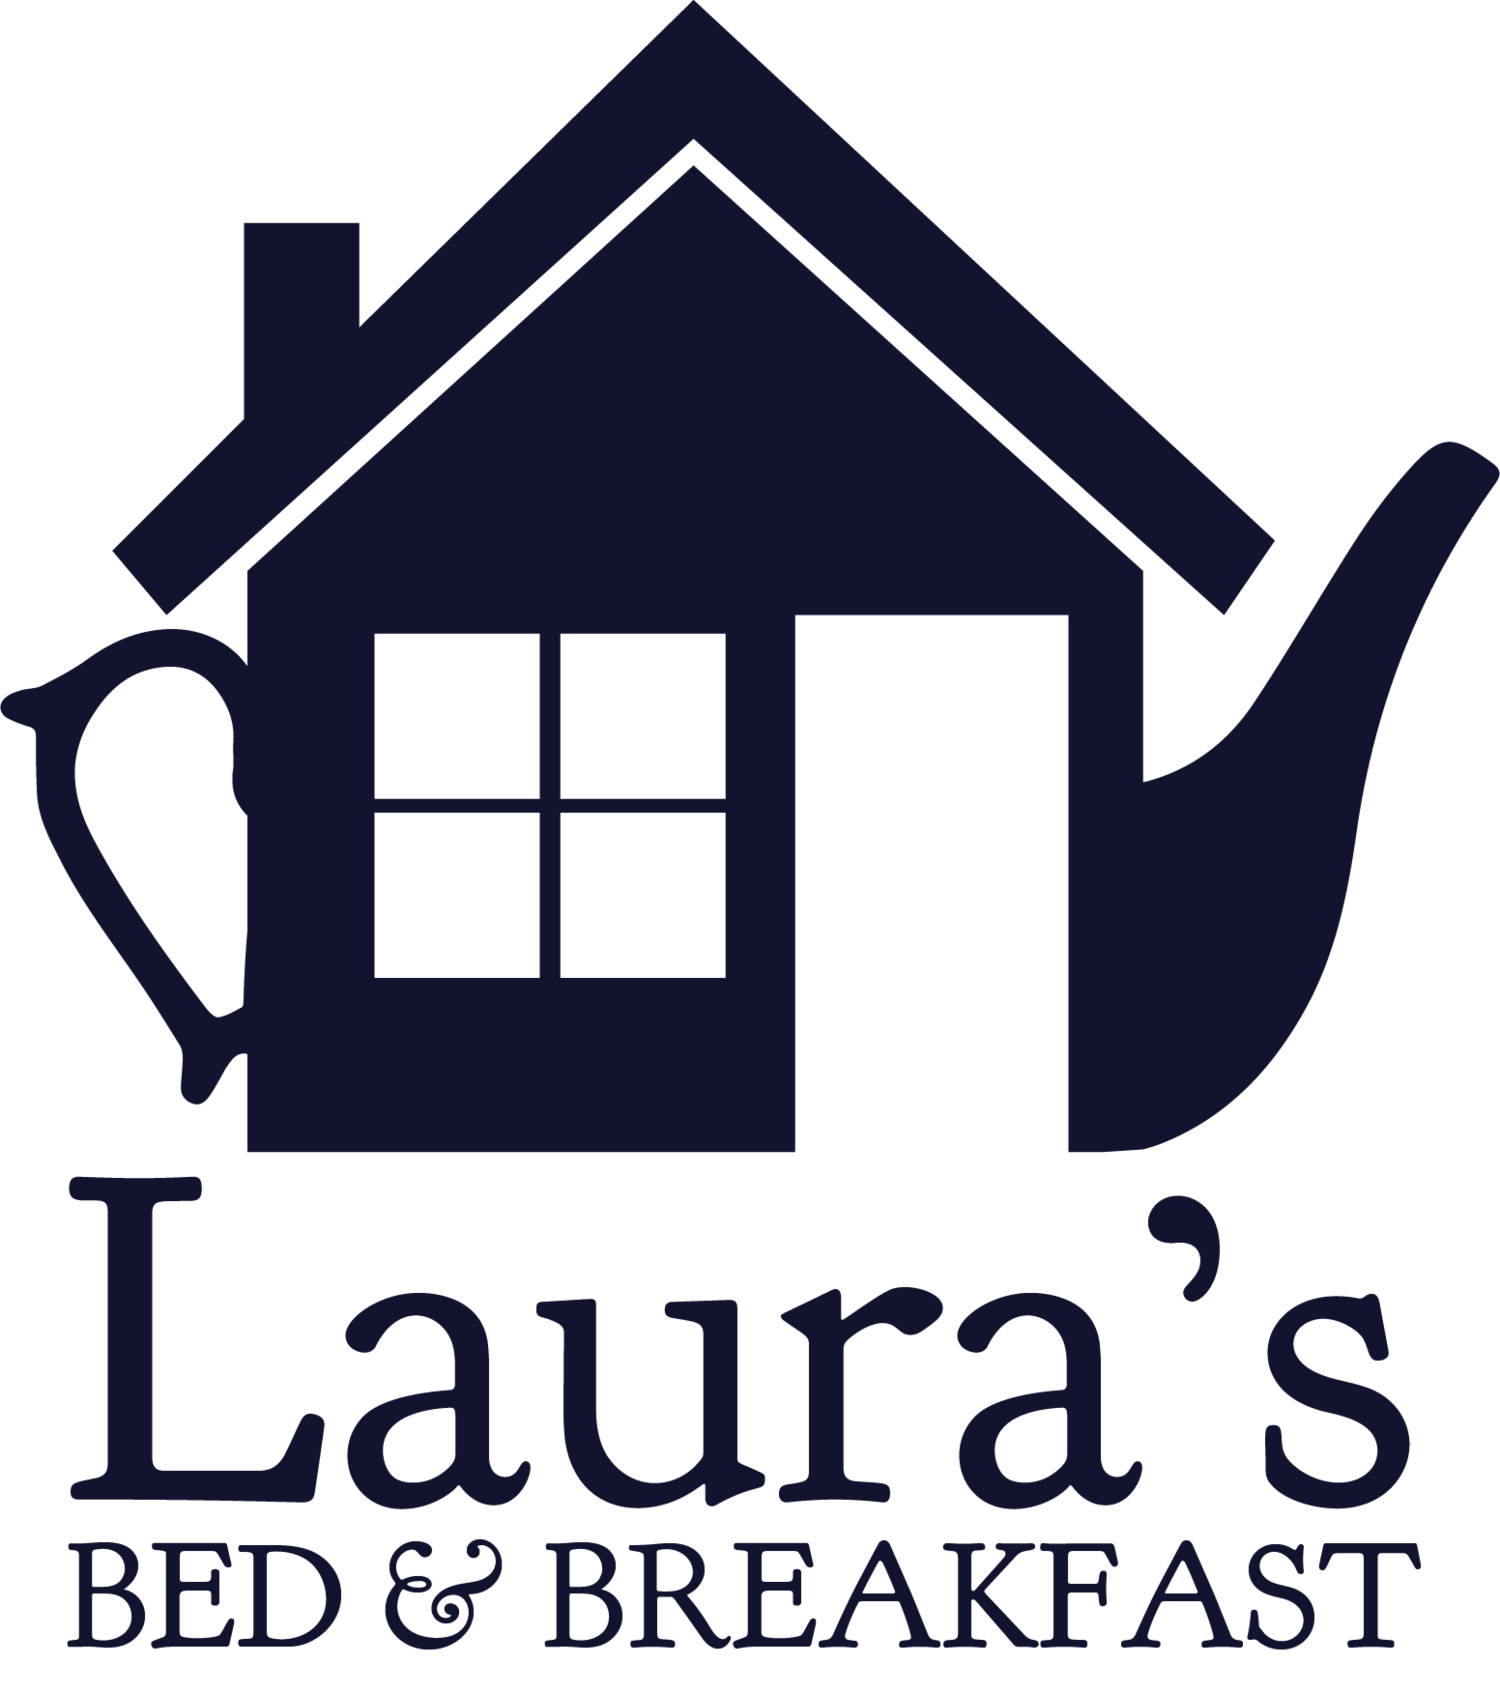 Laura's Bed & Breakfast